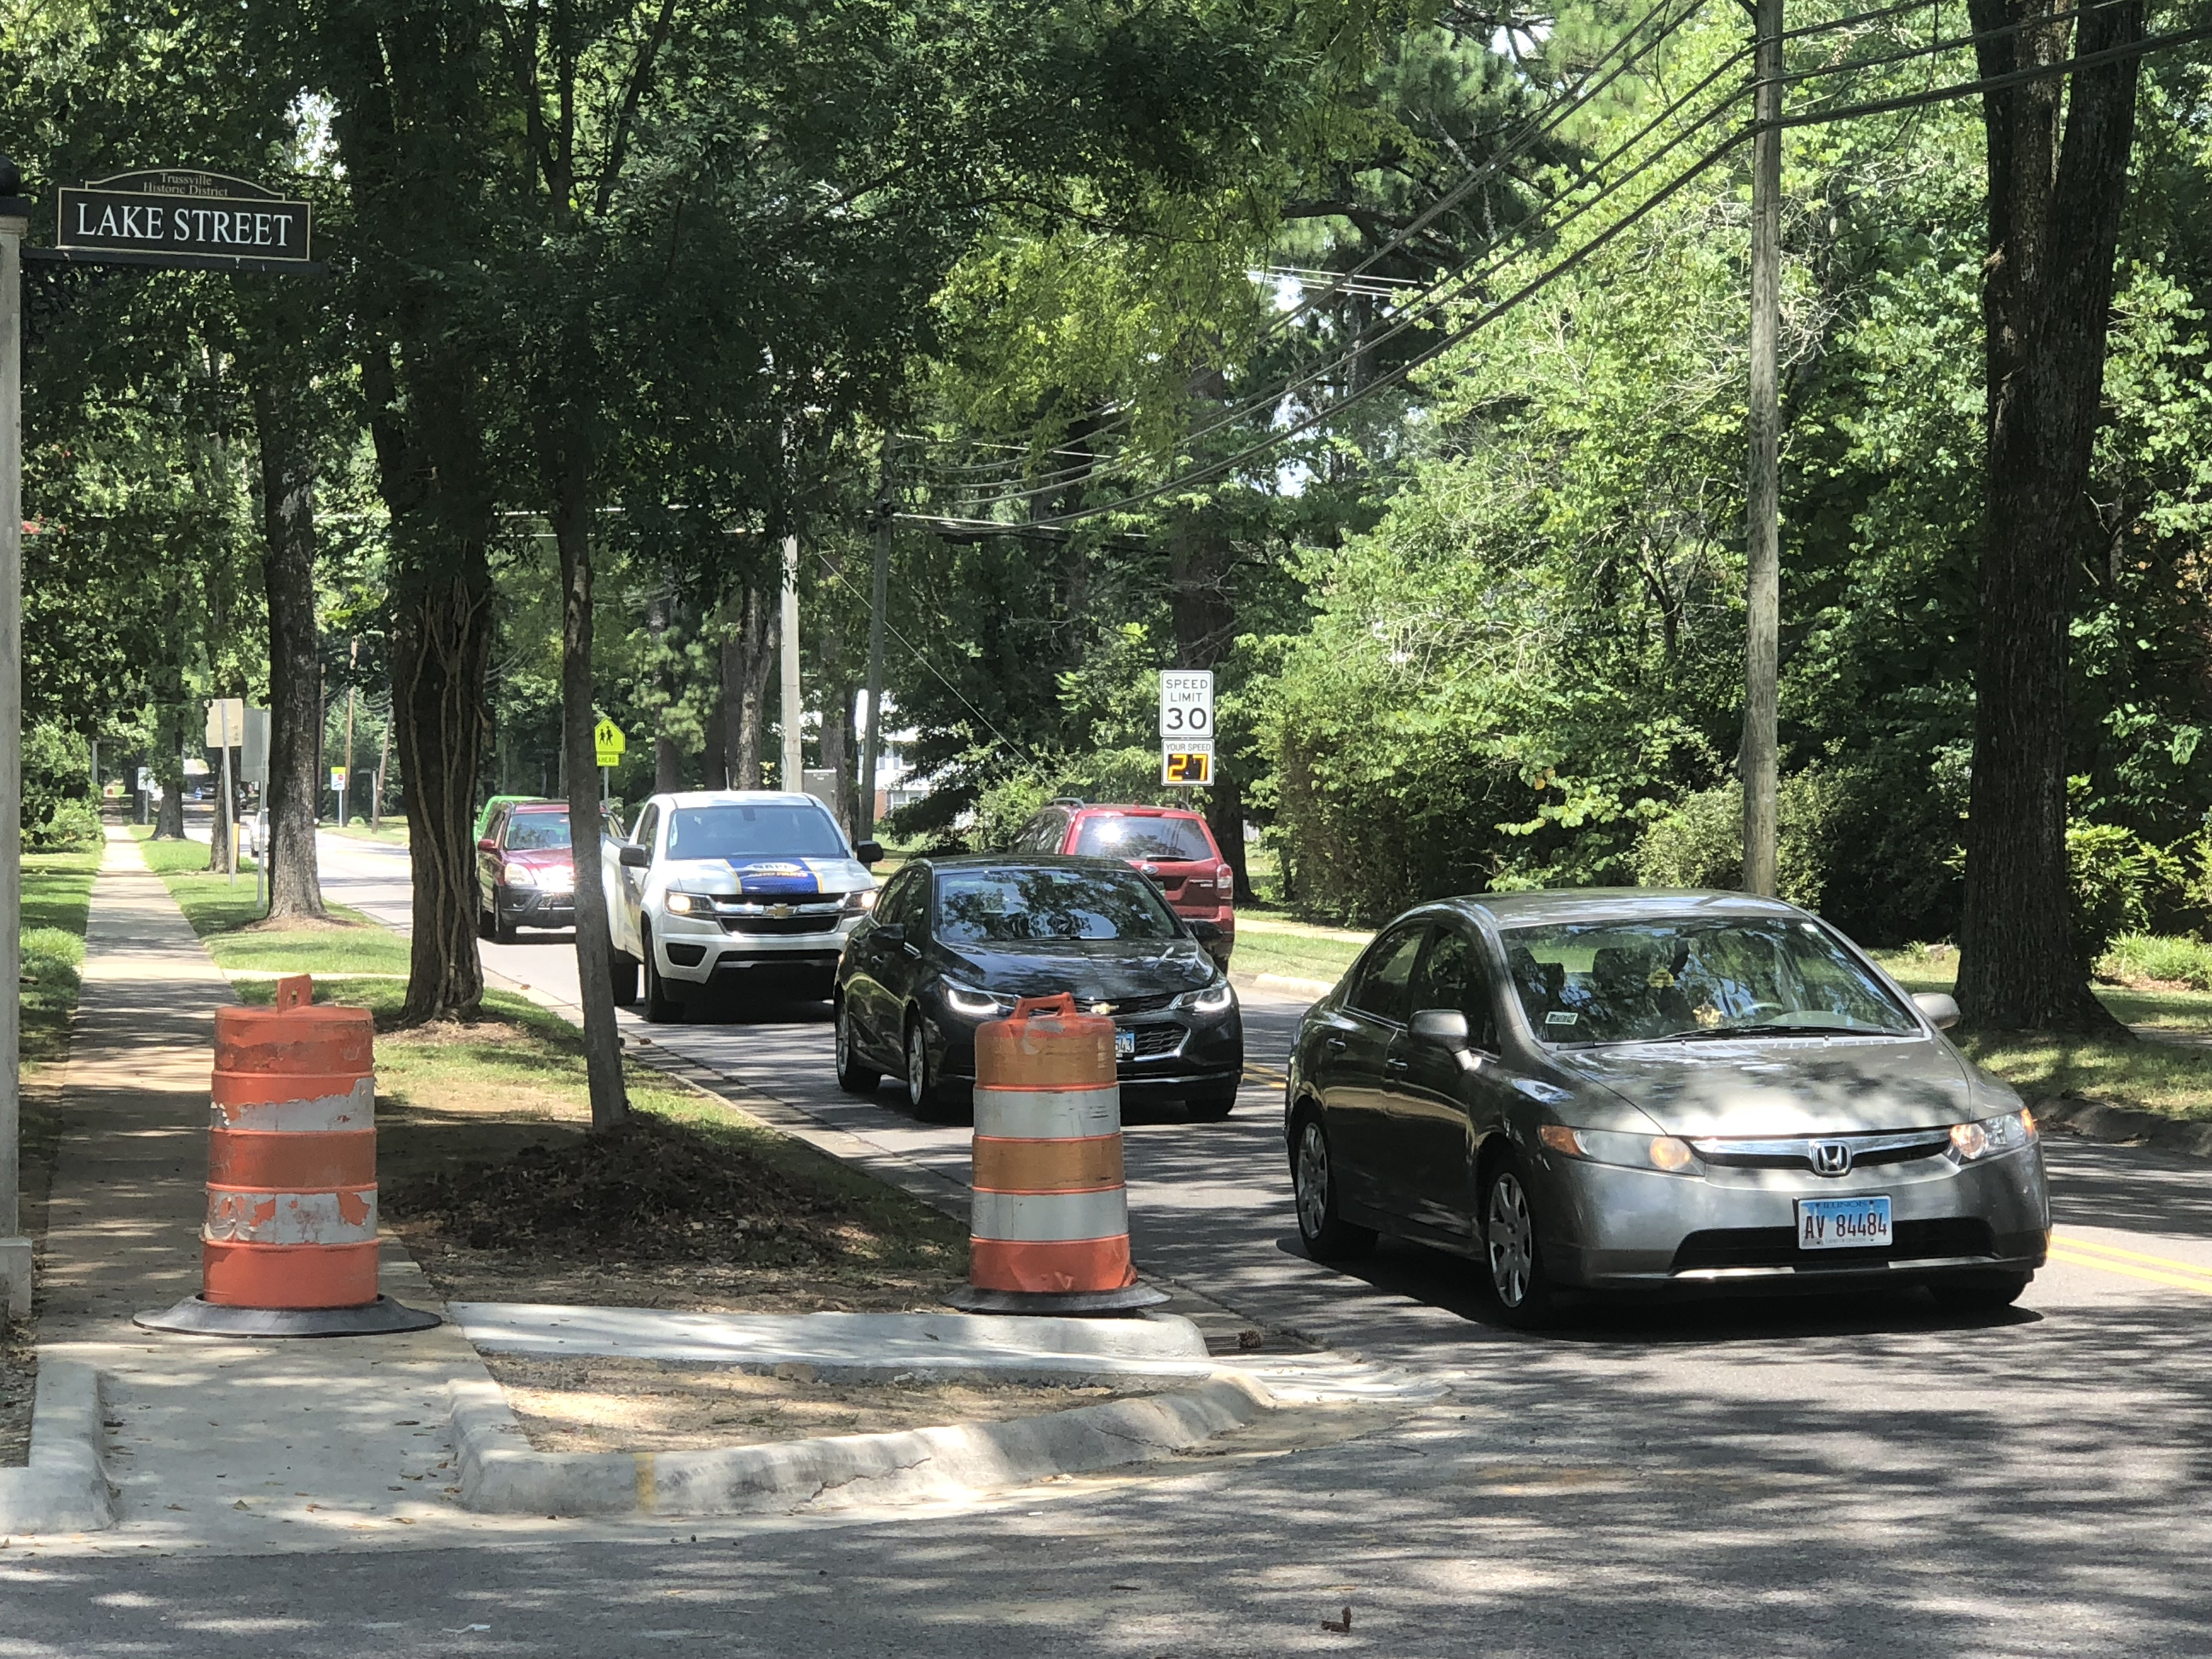 Trussville adds safety enhancements to street crossings